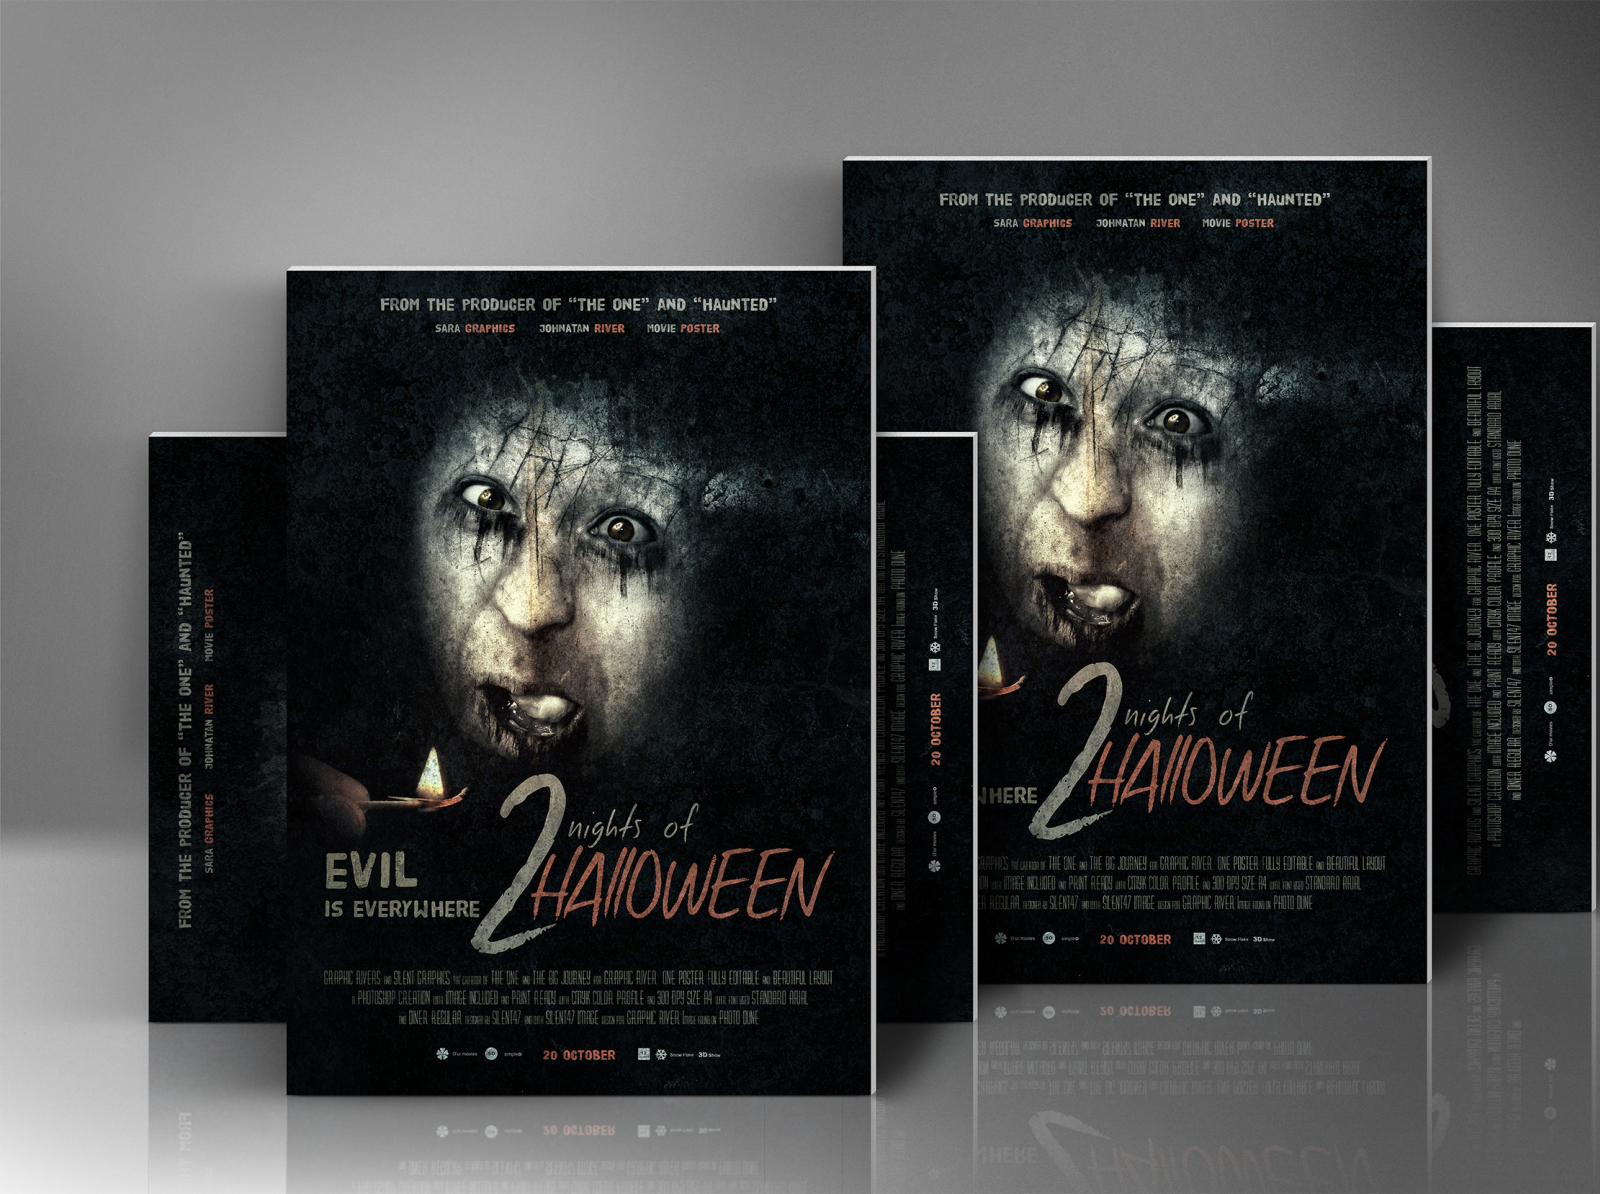 Horror Or Halloween Movie Poster by Silent Graphics on Dribbble